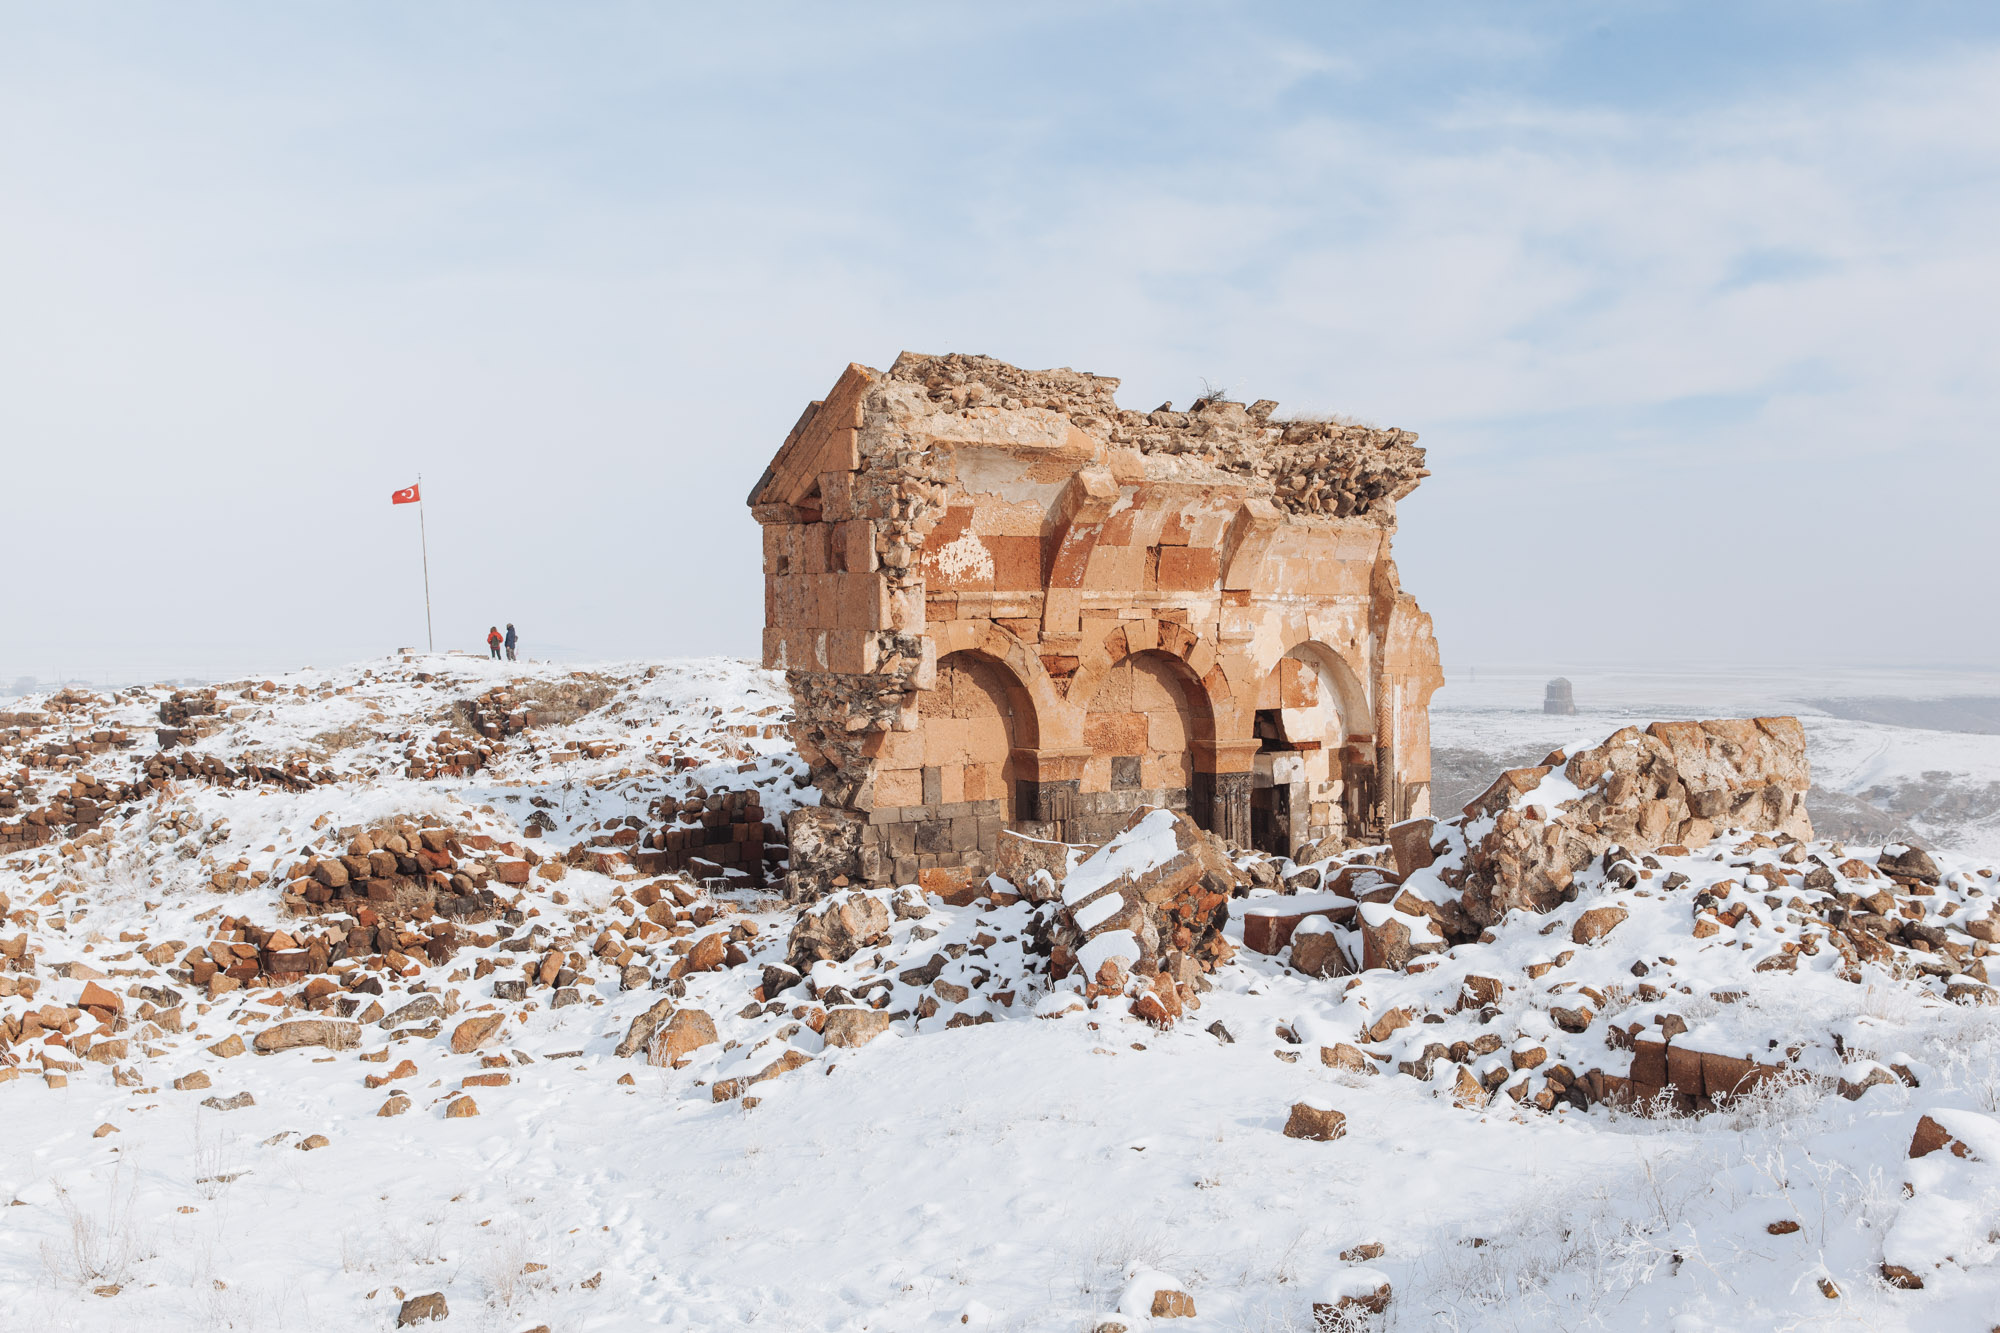 Ani was sacked by the Mongols in 1236 and devastated in a 1319 earthquake, after which it was reduced to a village and gradually abandoned by the seventeenth century.